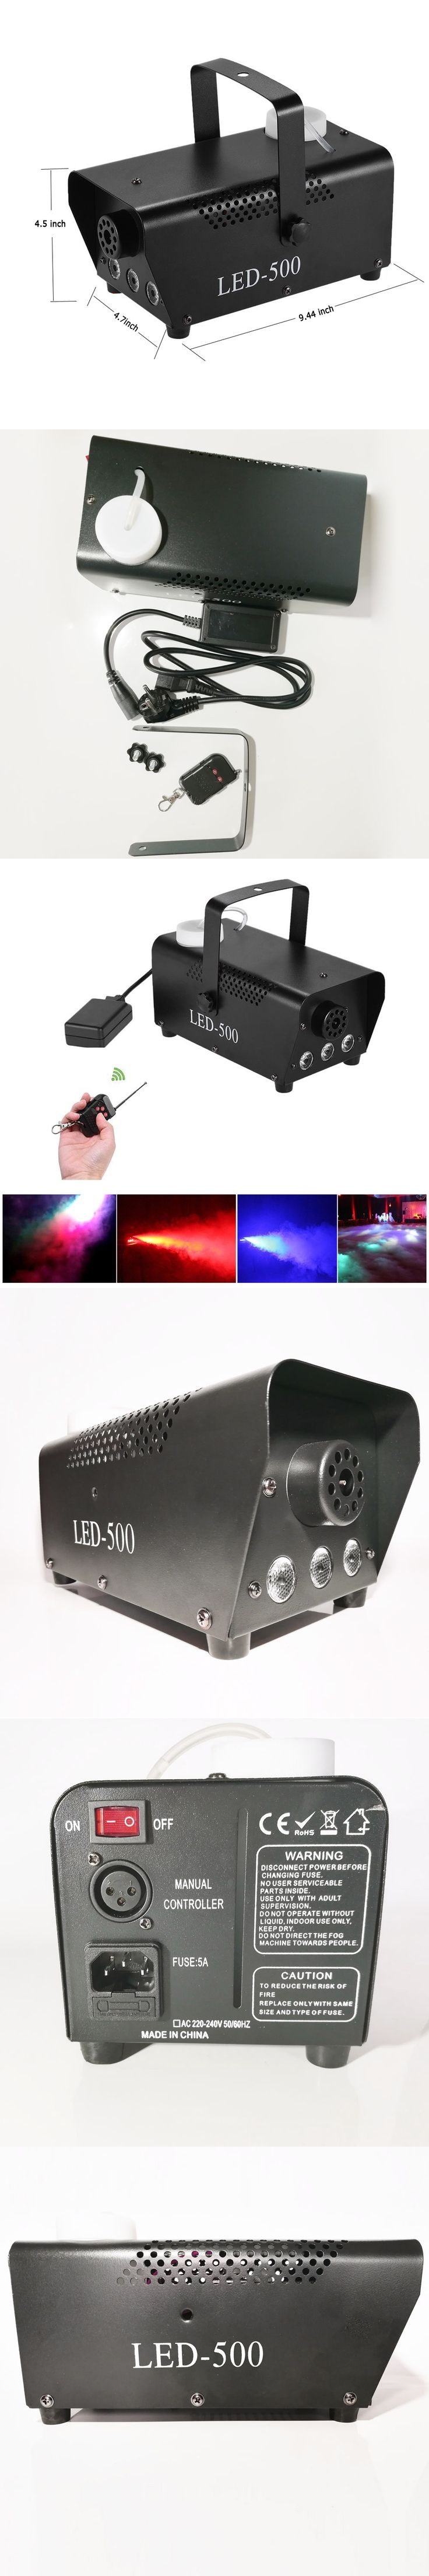 400w stage smoke machine cold smoker generator dmx fog machine for halloween stage party effect with remote control AC110-240V